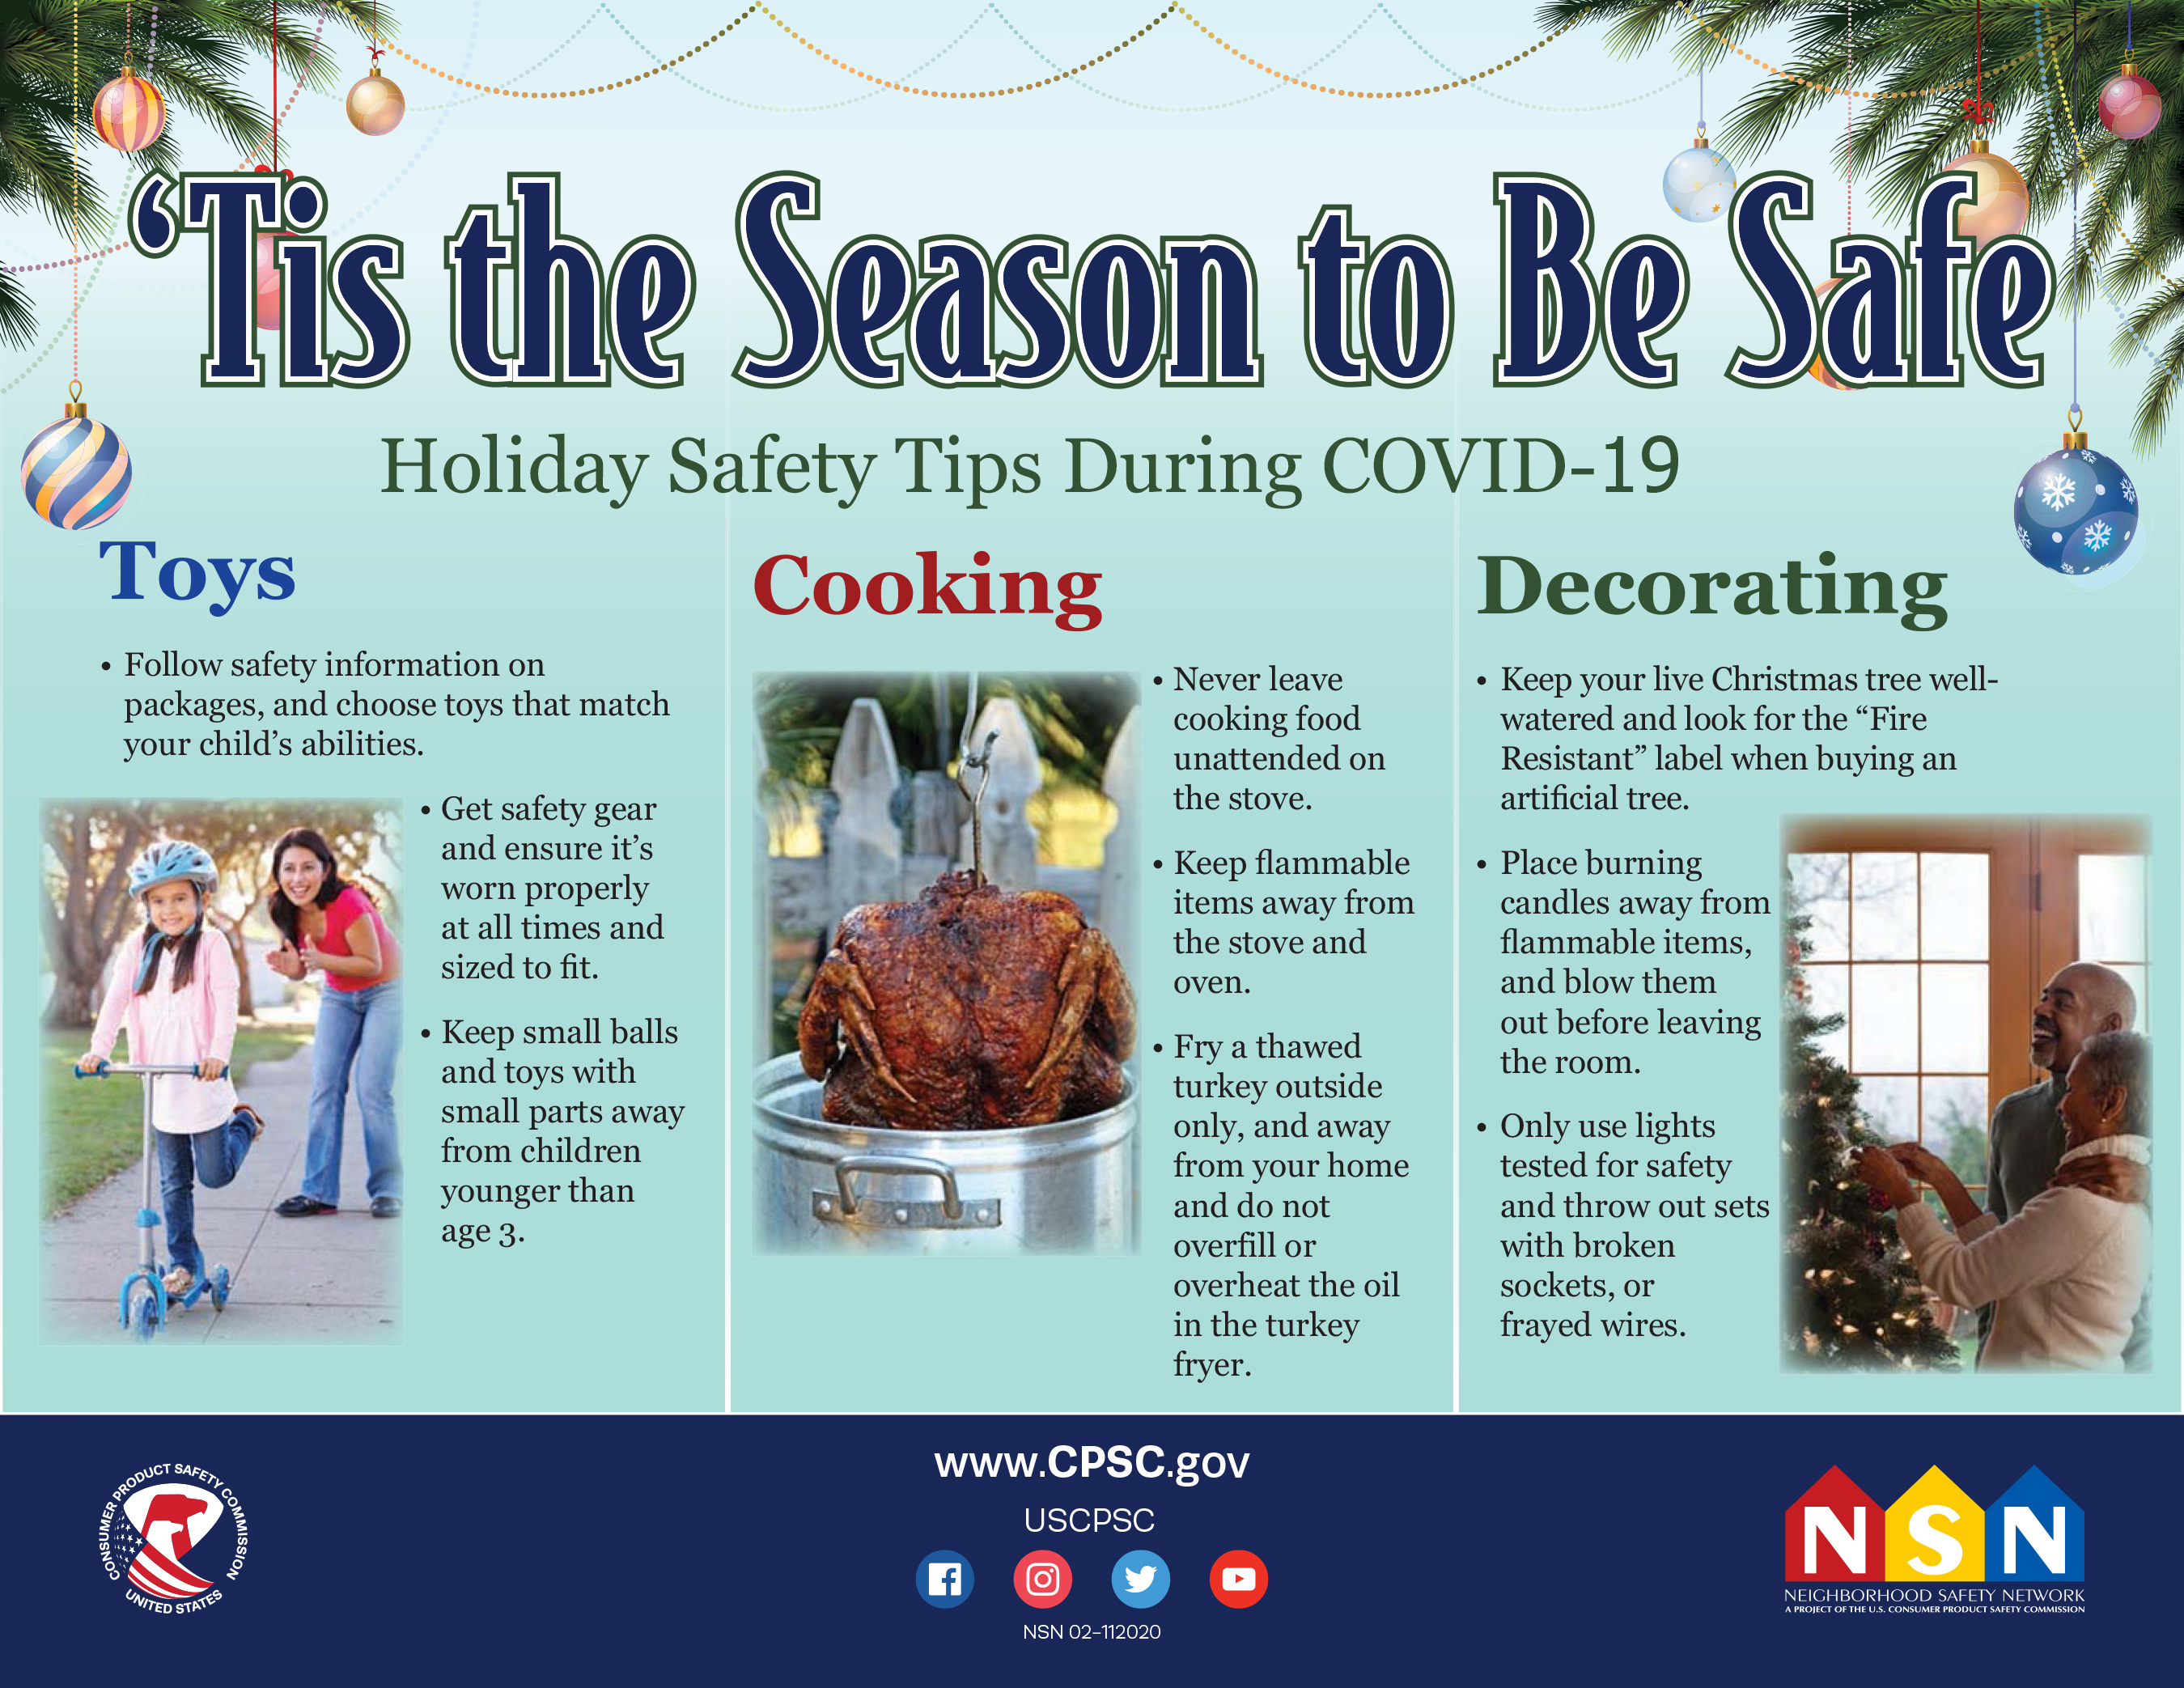 ´Tis the Season to Be Safe: Top Tips for Your Family During COVID-19